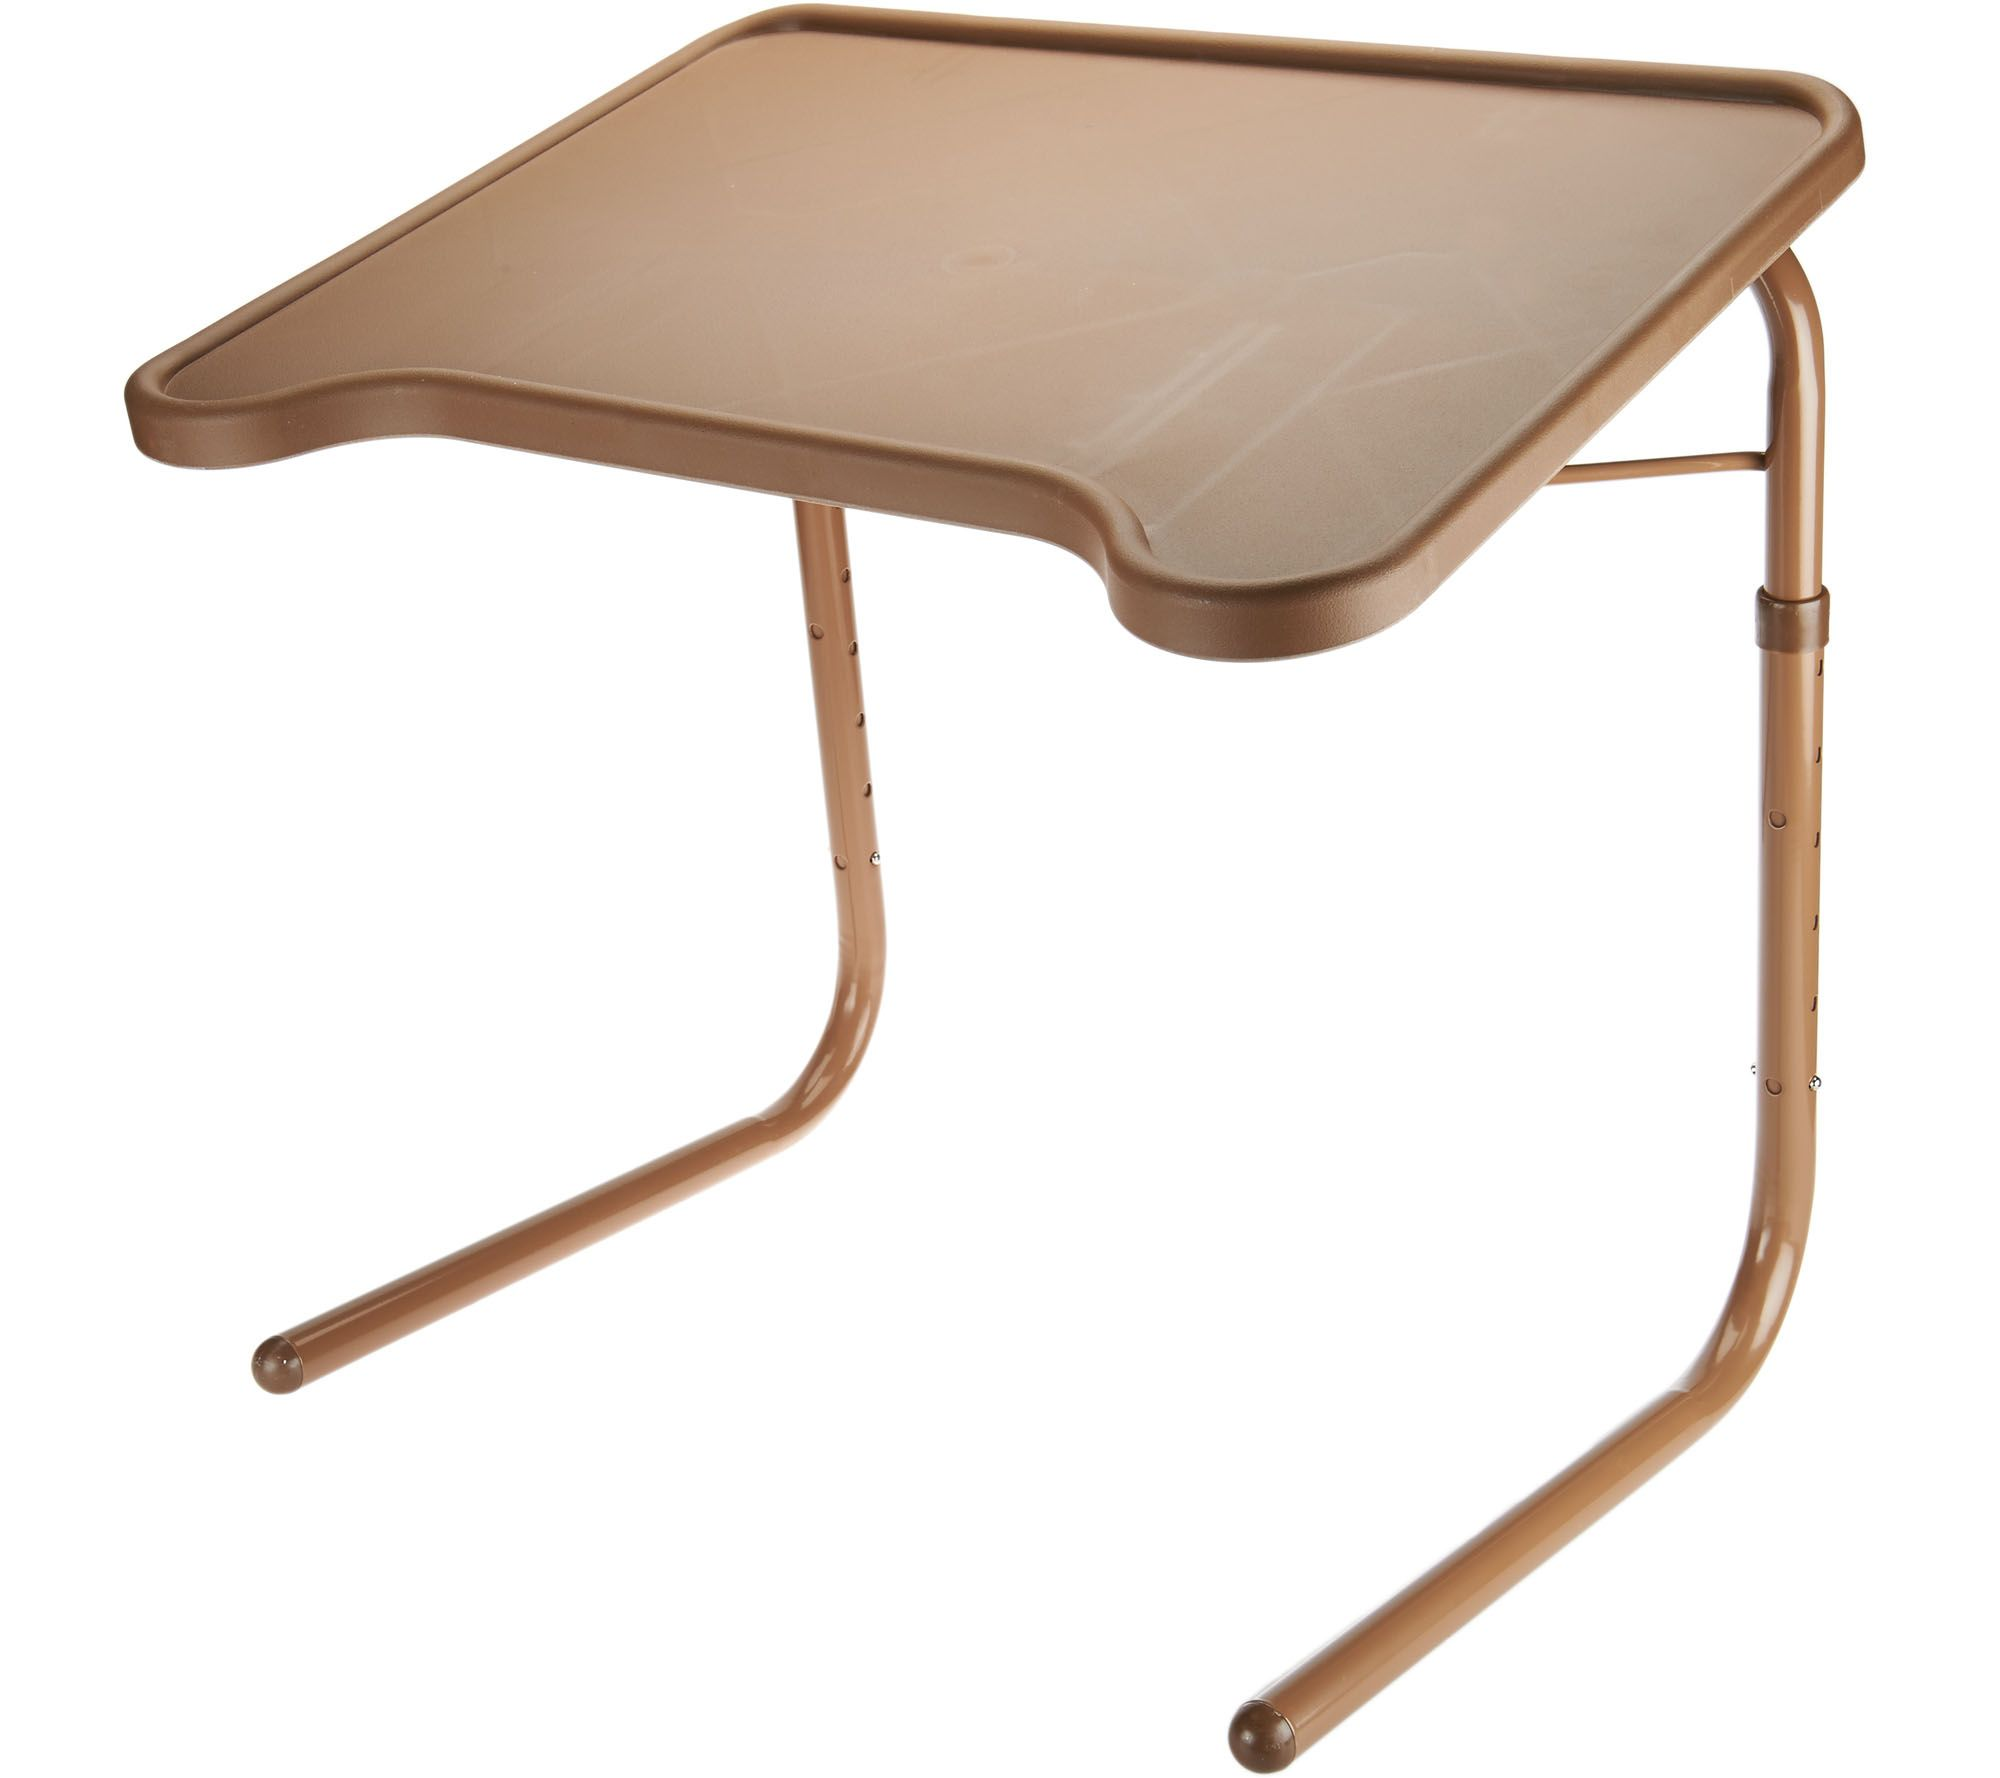 Table Mate Classic Multipurpose Adjustable Folding Table Page 1